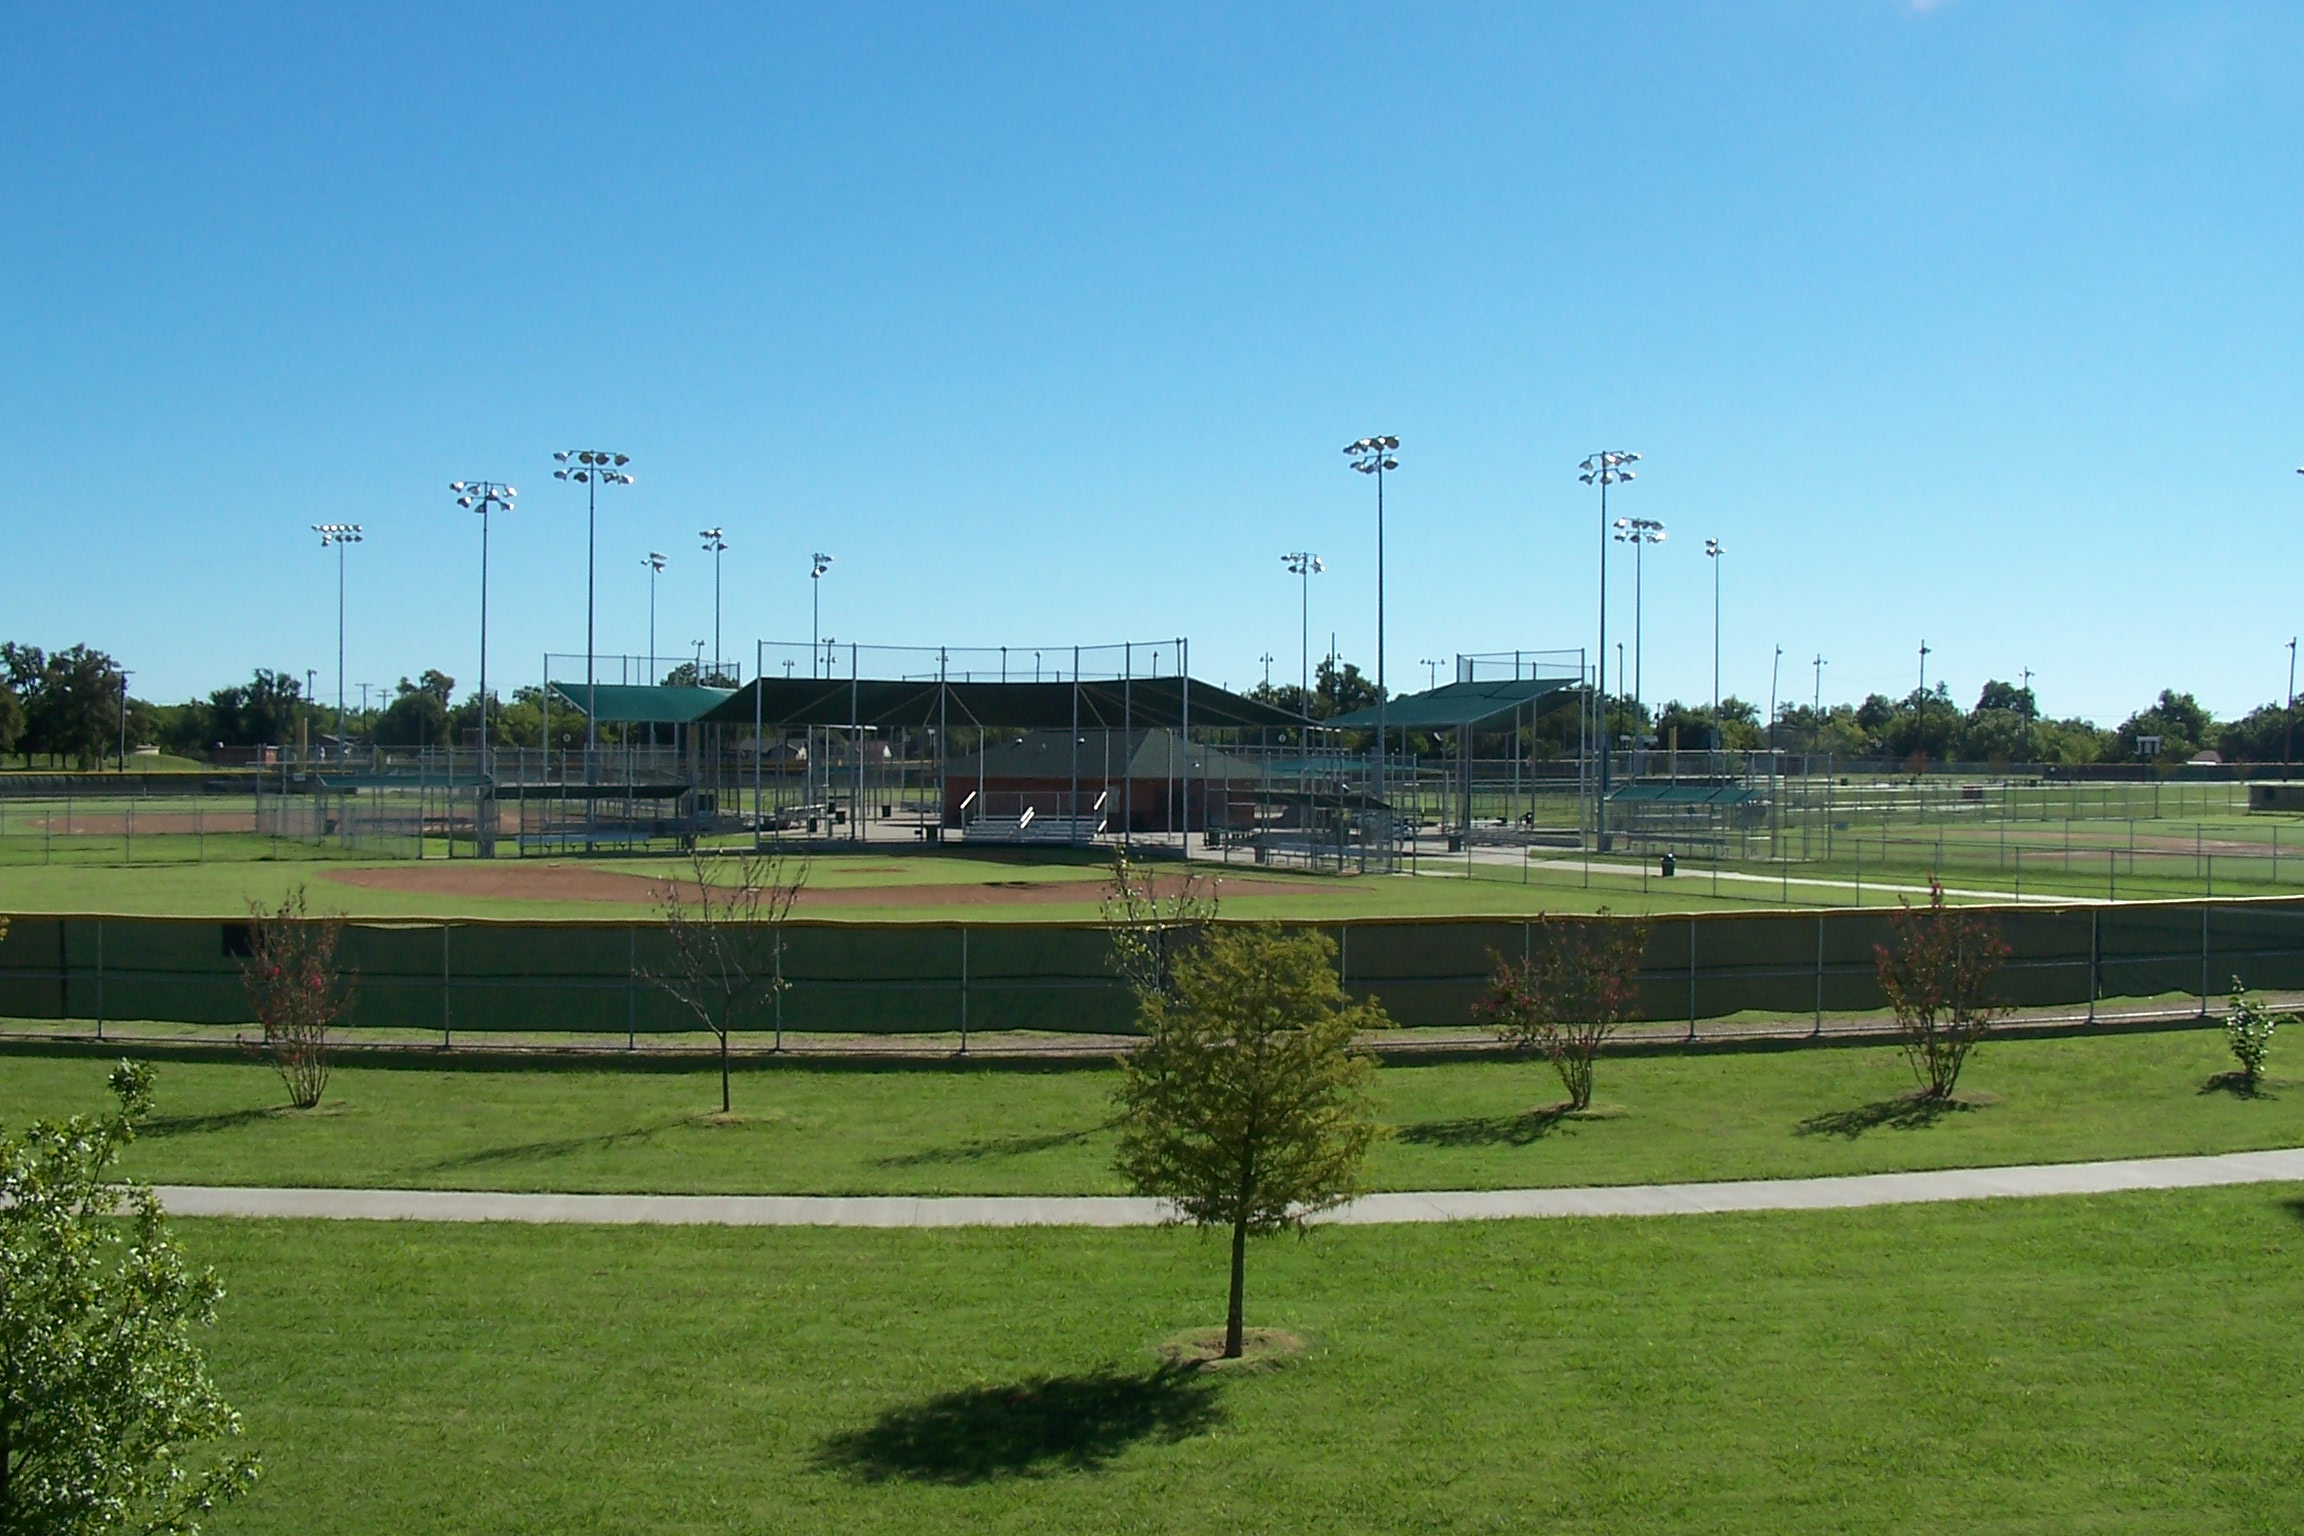 Baseball/softball field